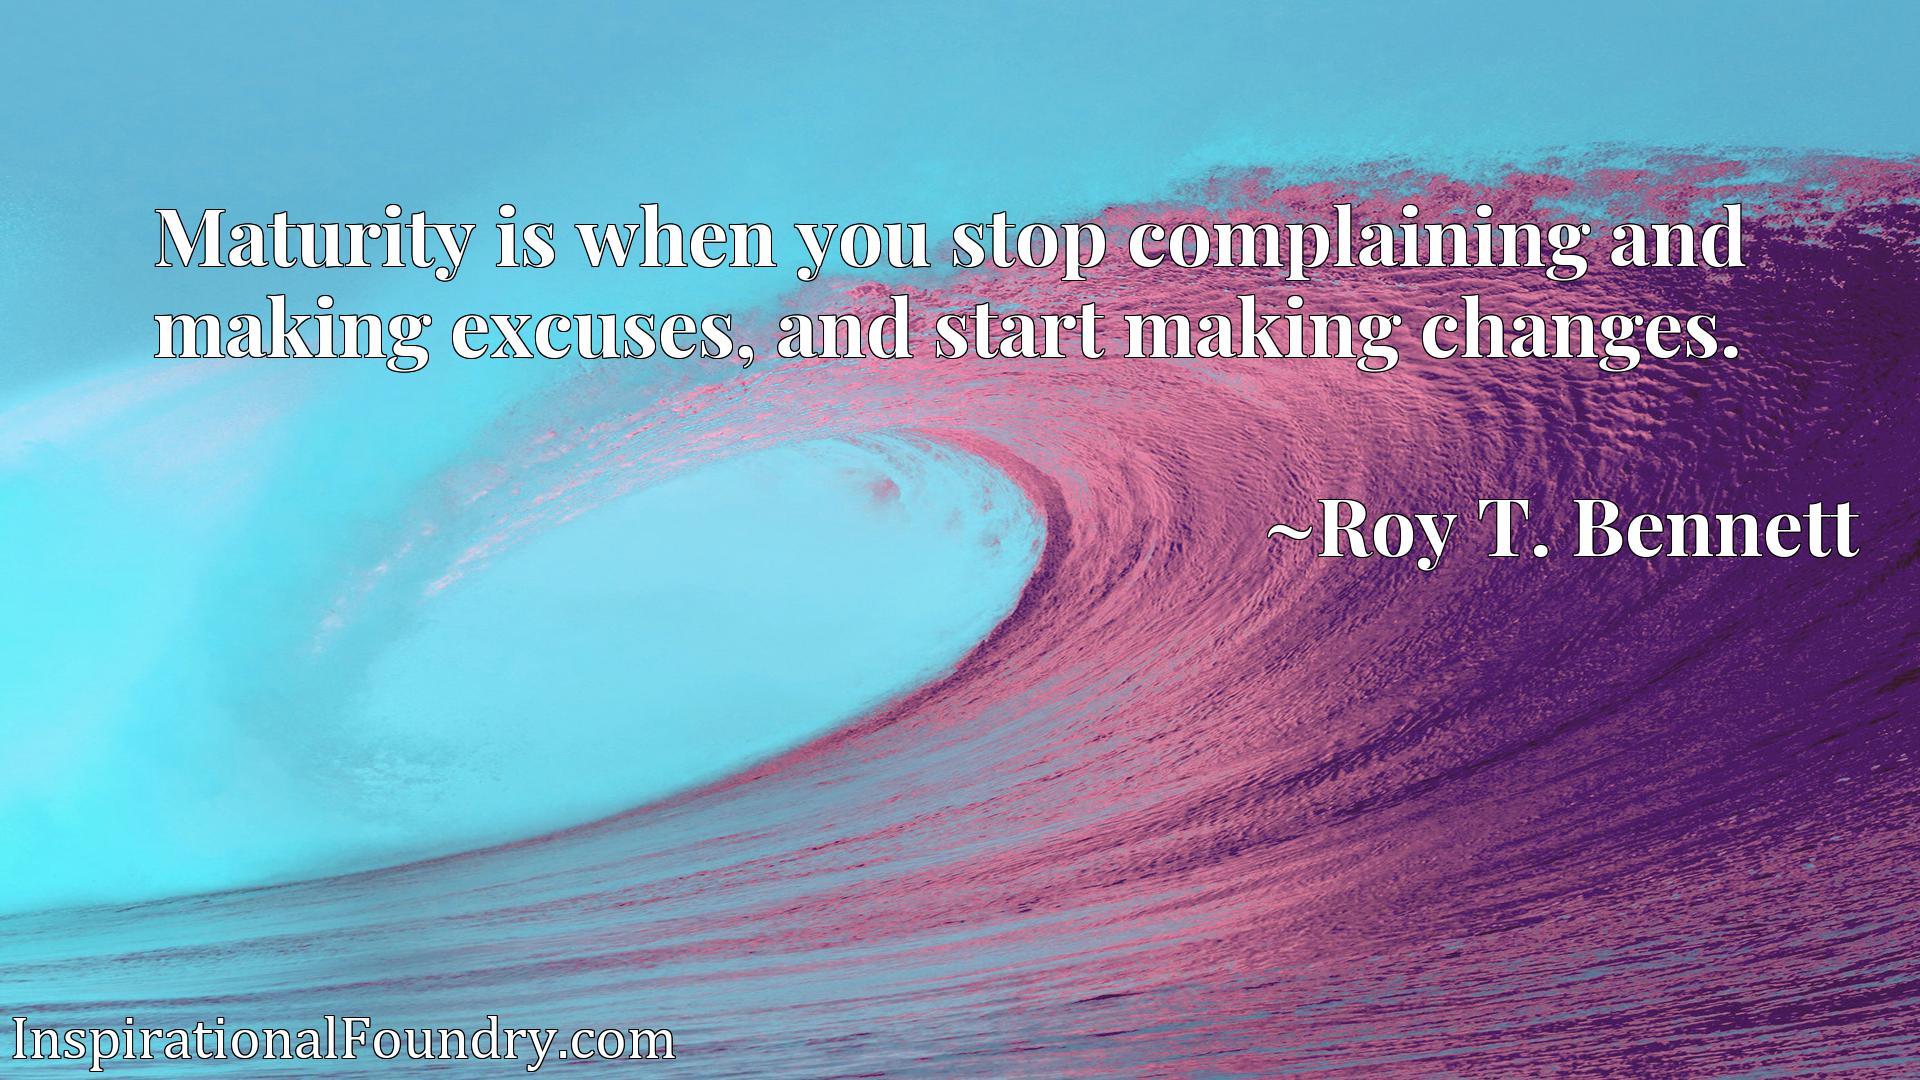 Maturity is when you stop complaining and making excuses, and start making changes.